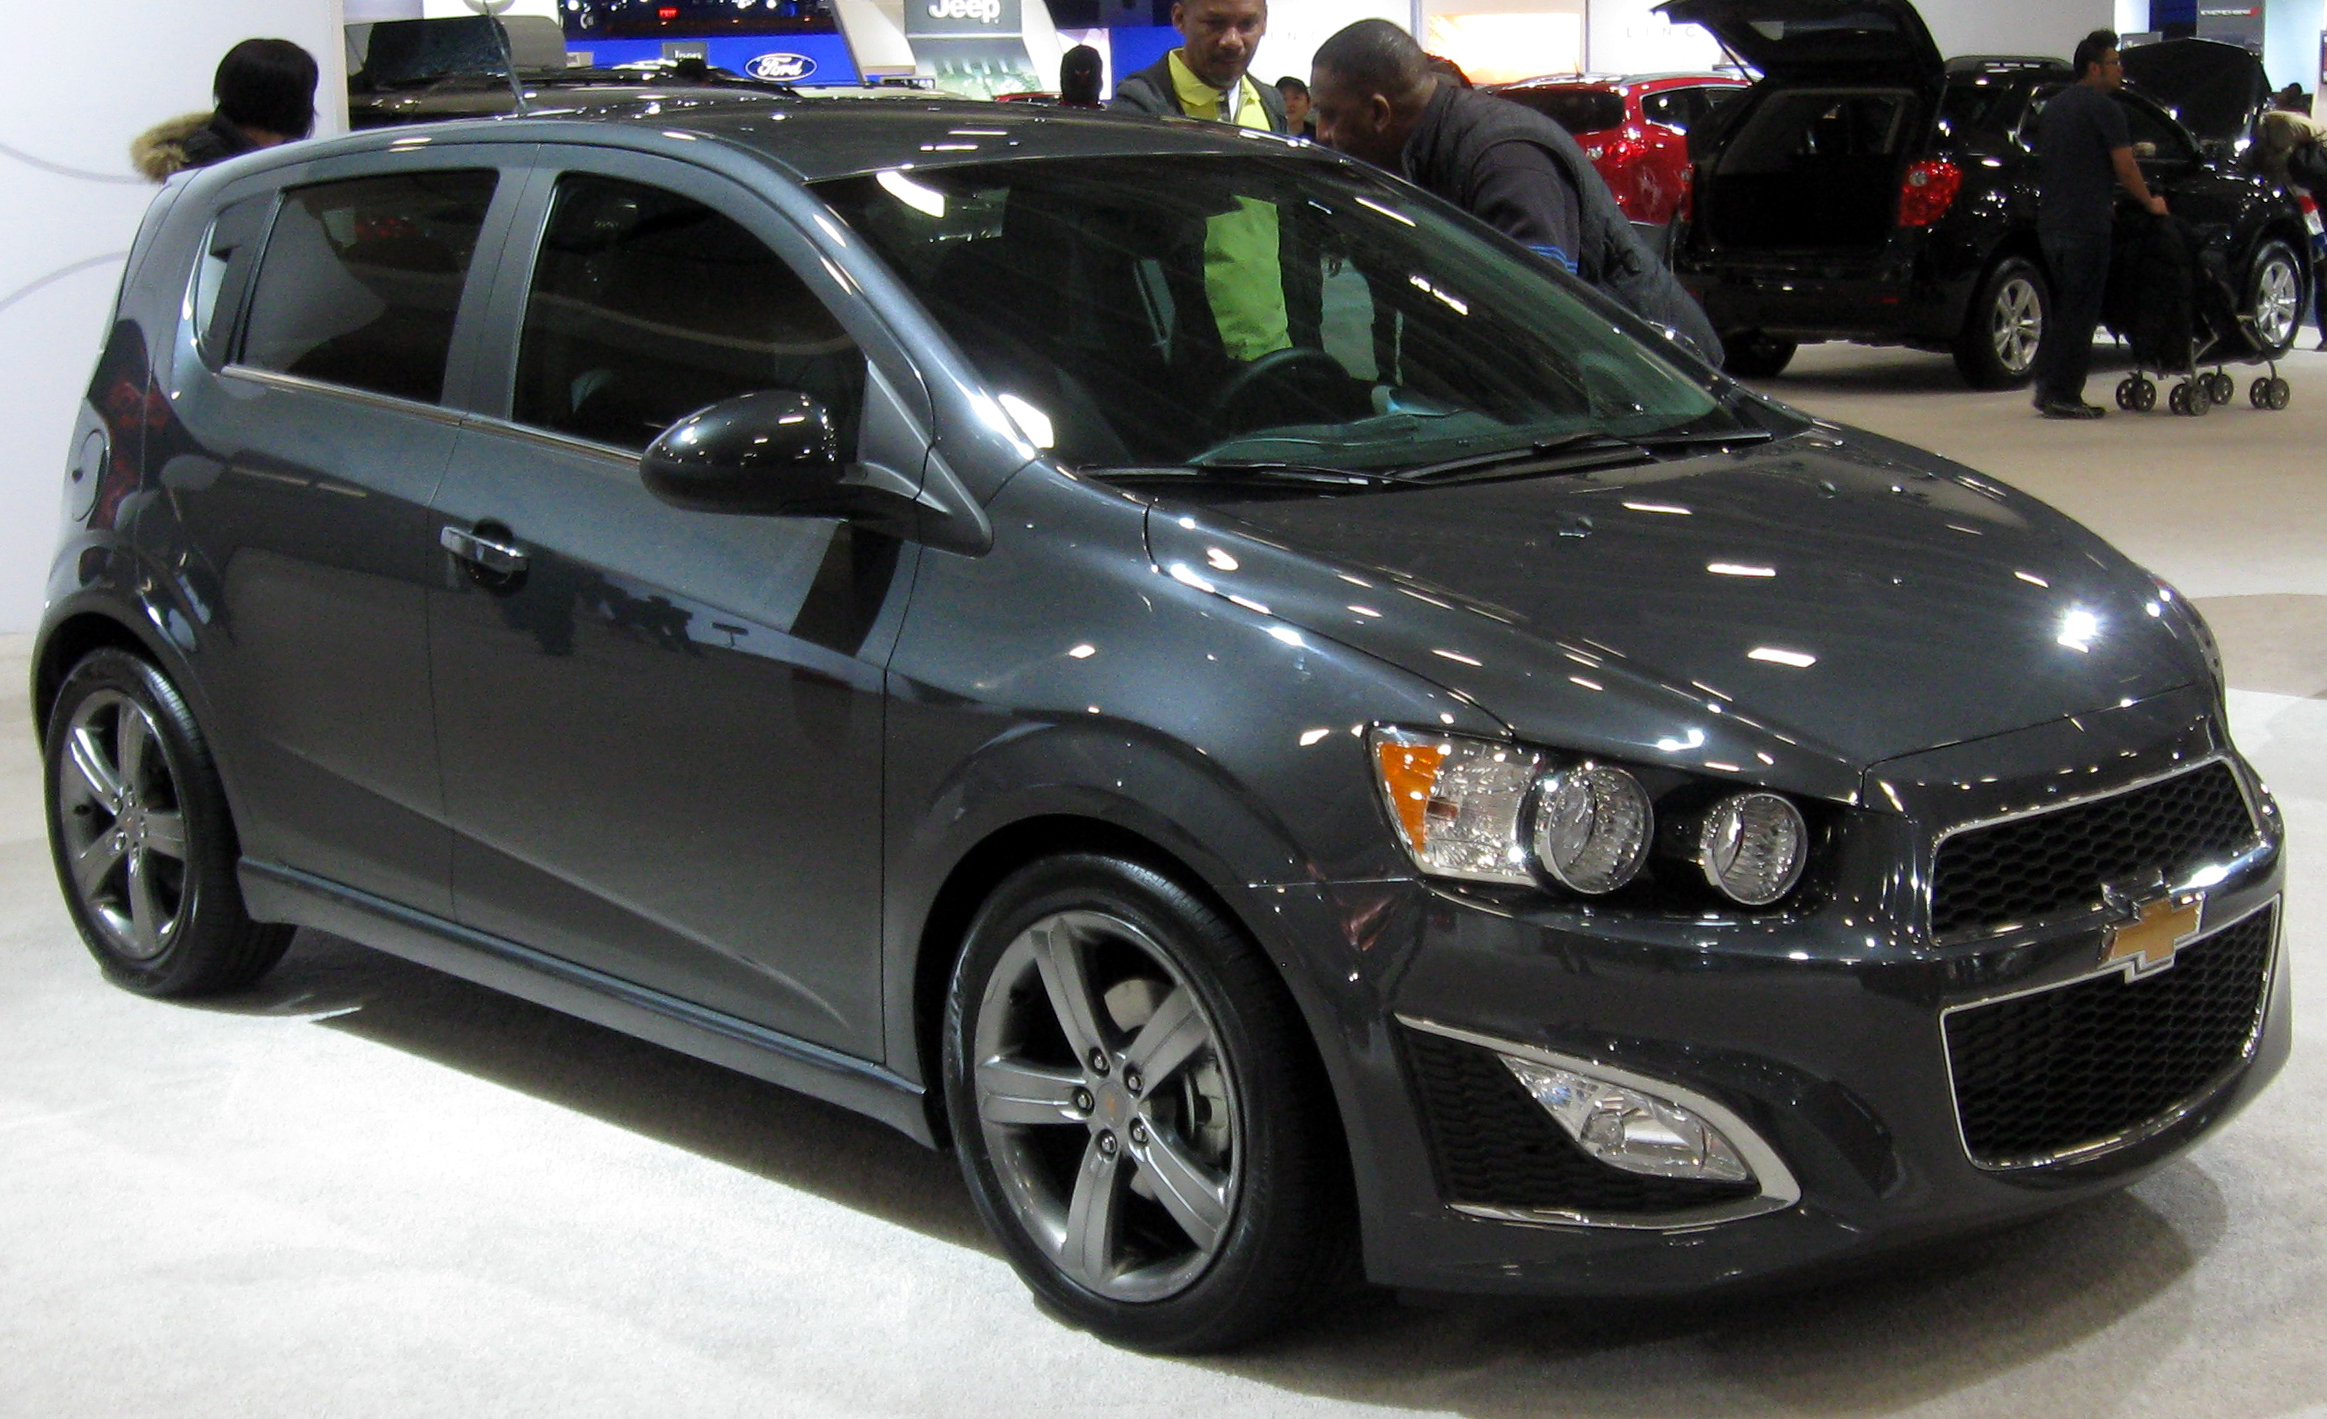 file 2013 chevrolet sonic rs 2012 dc jpg wikimedia commons. Black Bedroom Furniture Sets. Home Design Ideas